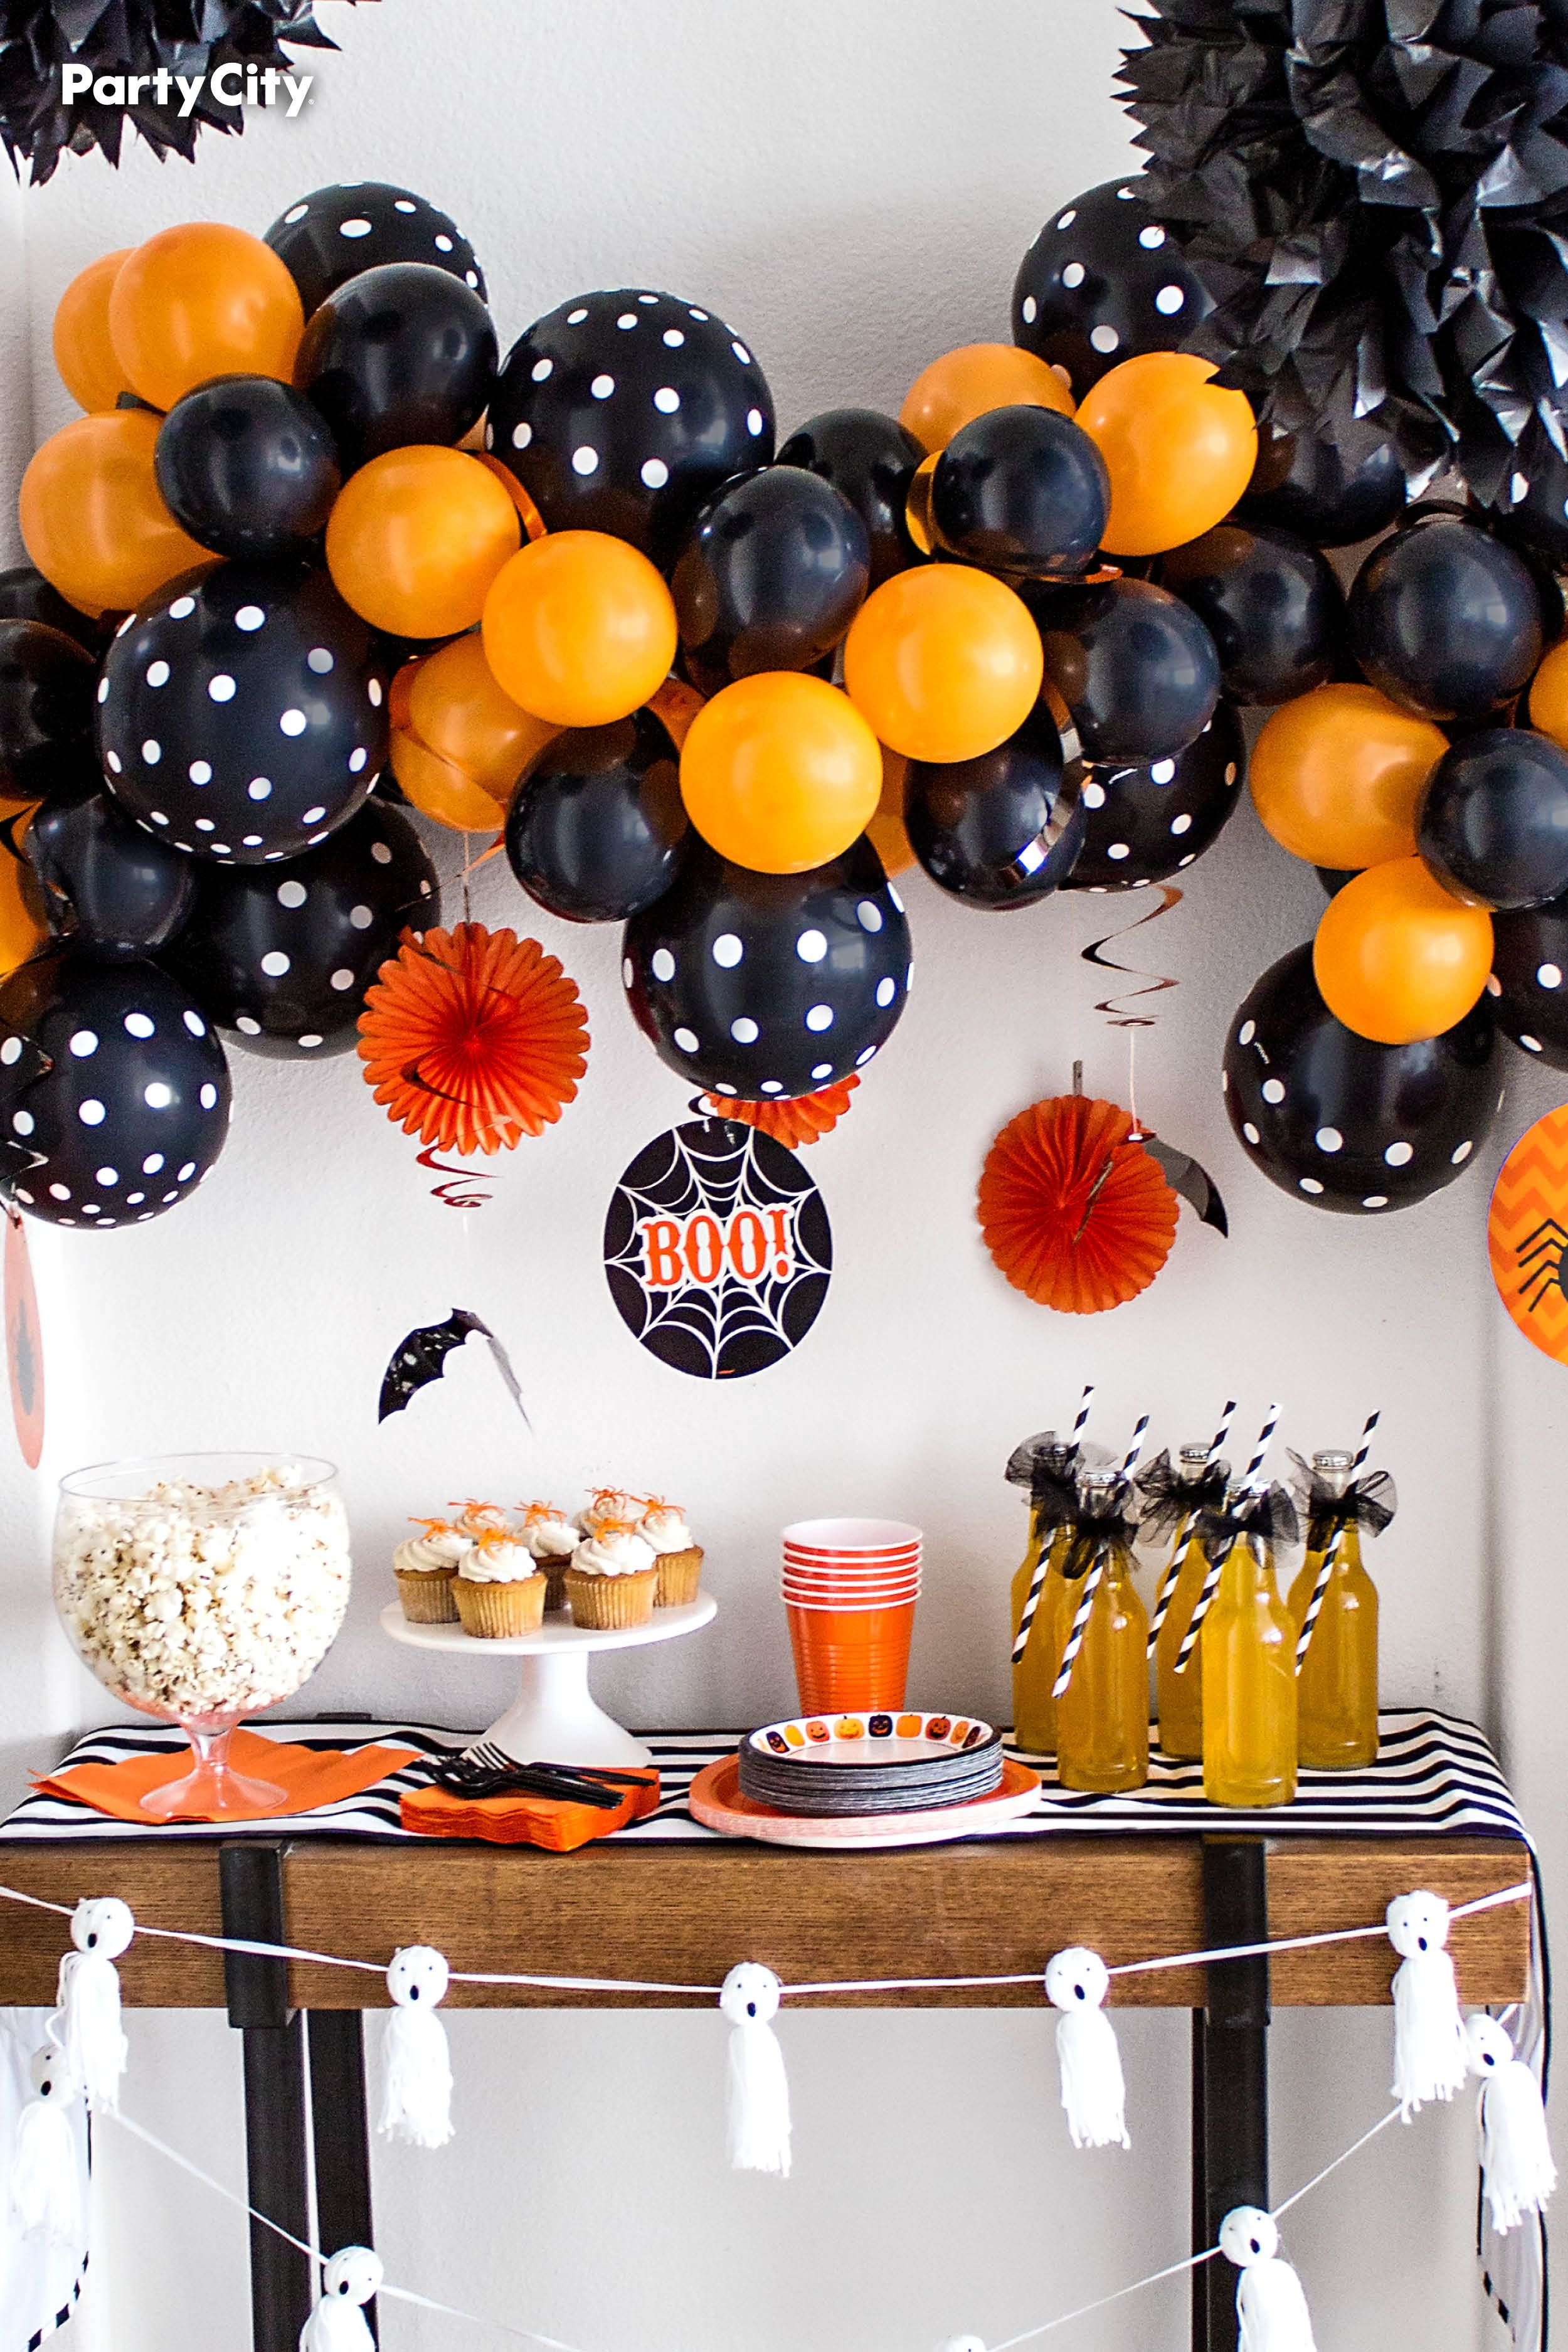 How To Make A Halloween Party Fun.Halloween Pumpkin Fun Decor Birthday Halloween Party Fun Halloween Decor Halloween Party Kids